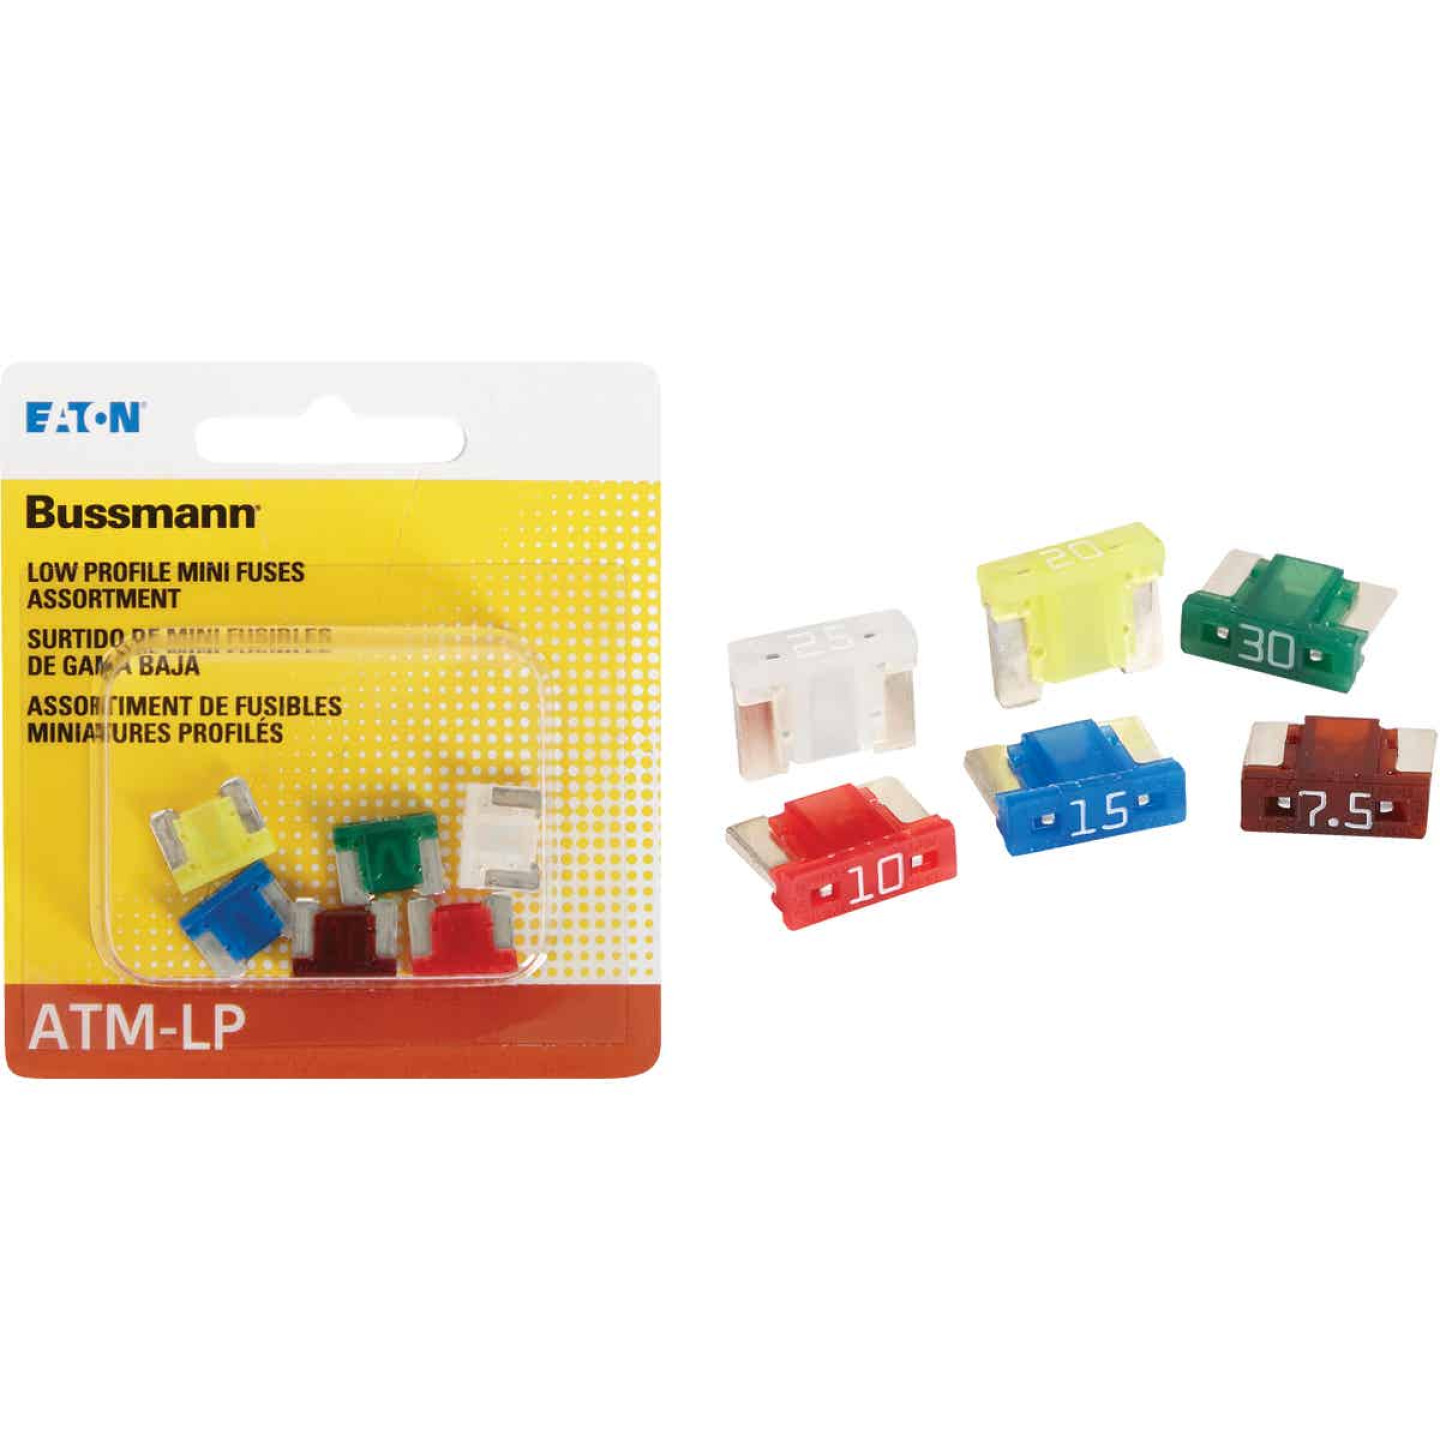 Bussmann ATM Low Profile Mini Fuse Assortment (6-Piece) Image 1